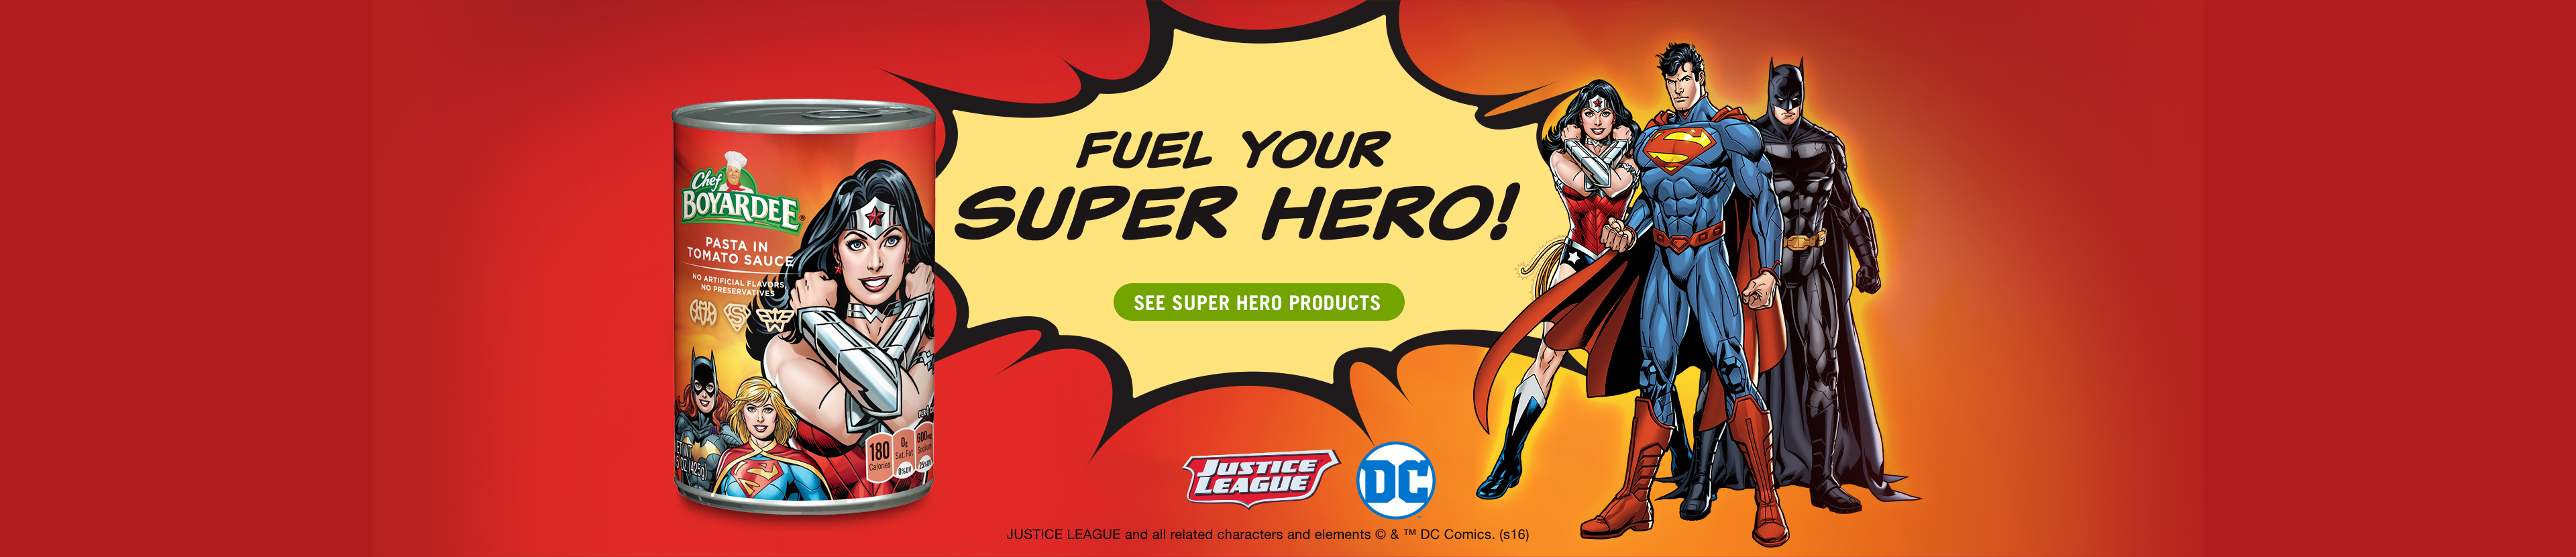 Fuel your Super Hero